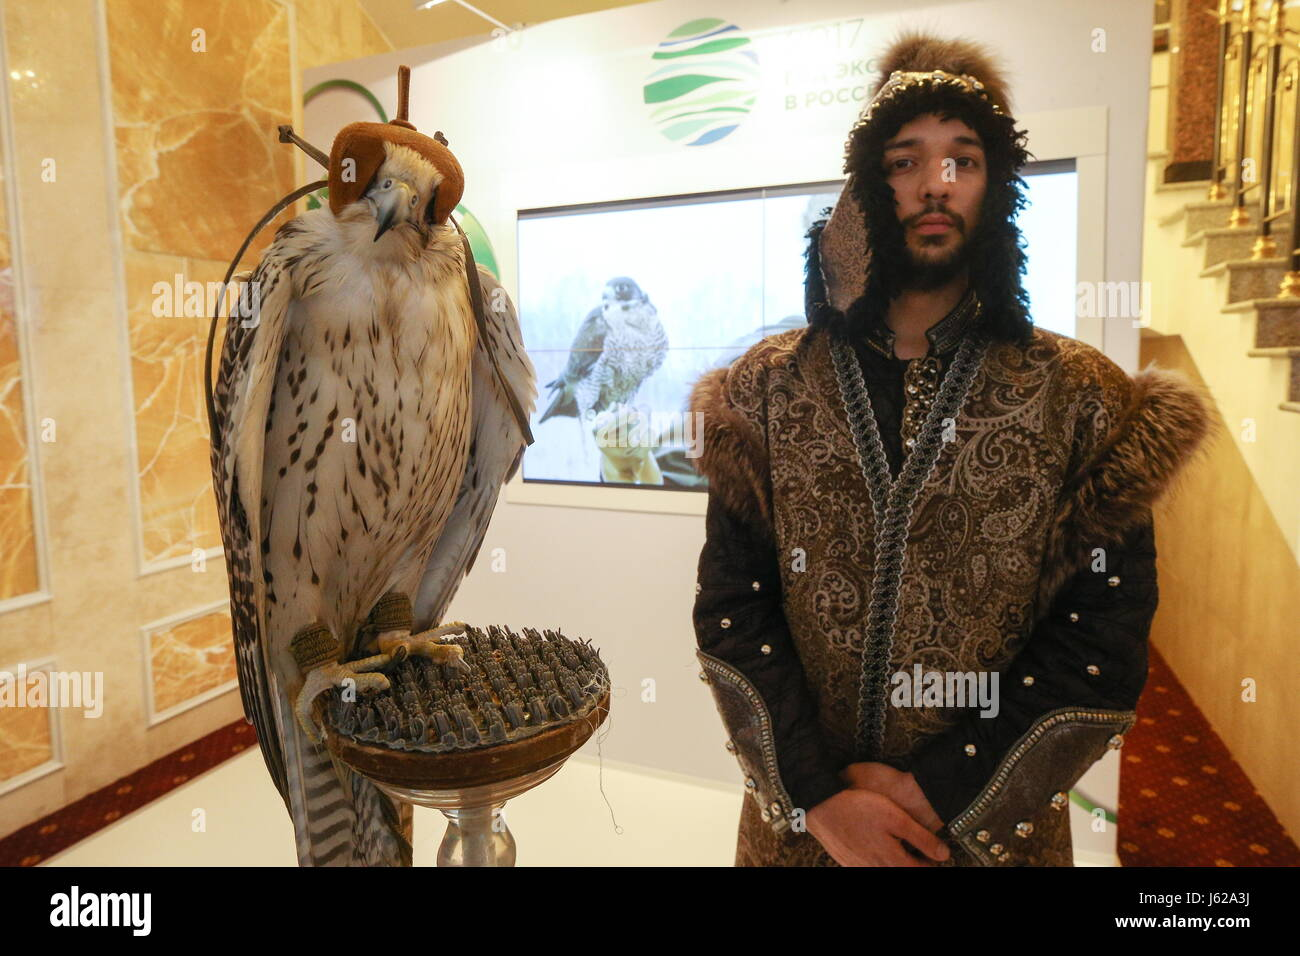 """Kazan, Russia. 19th May, 2017. A falcon and a falconer seen at the 9th International Economic Summit titled """"Russia - Stock Image"""